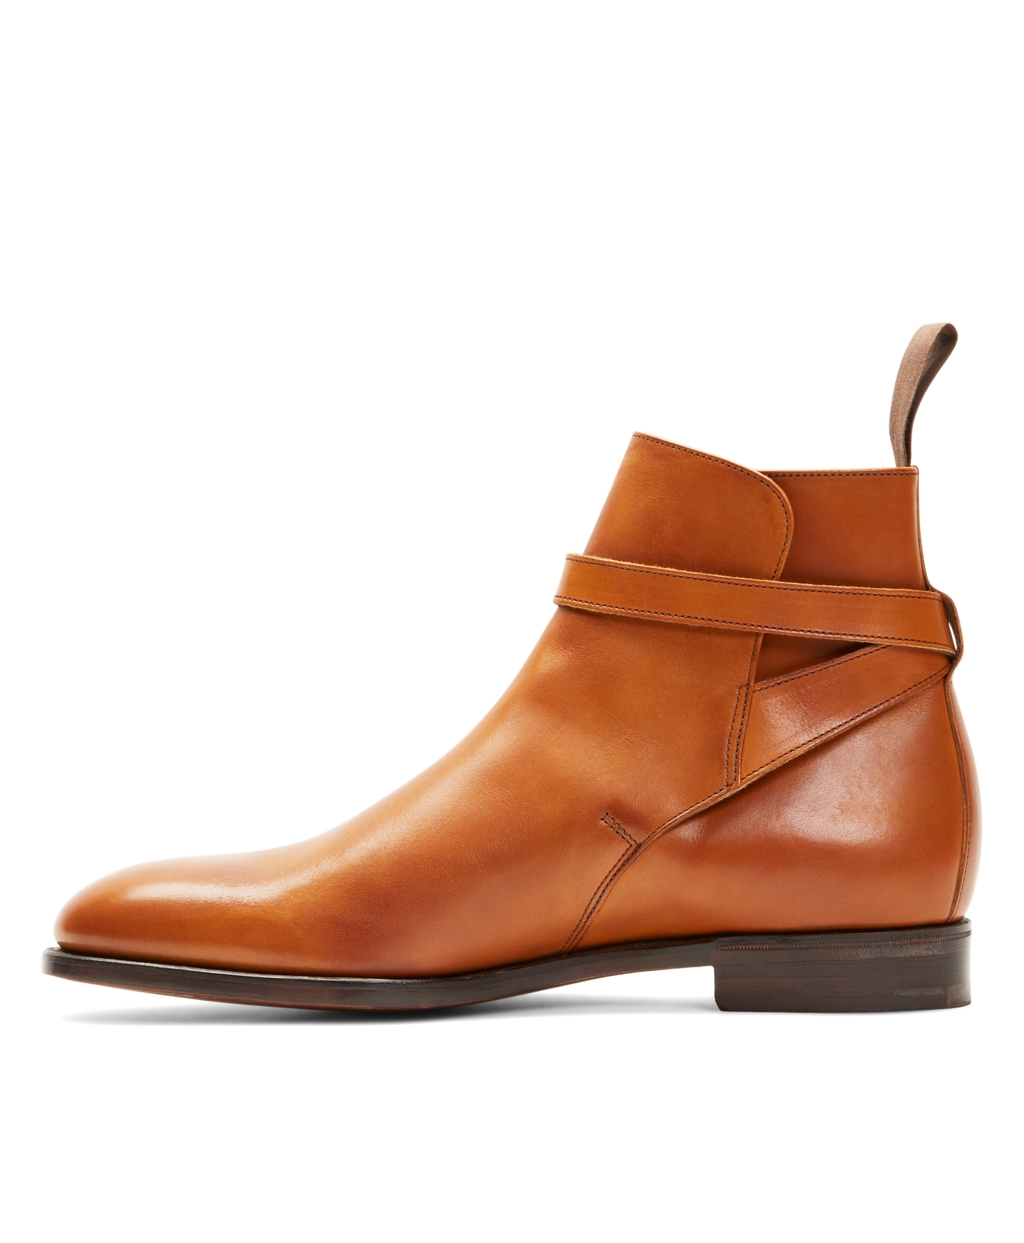 Men's Peal and Co. Leather Ankle Strap Buckle Boots | Brooks Brothers